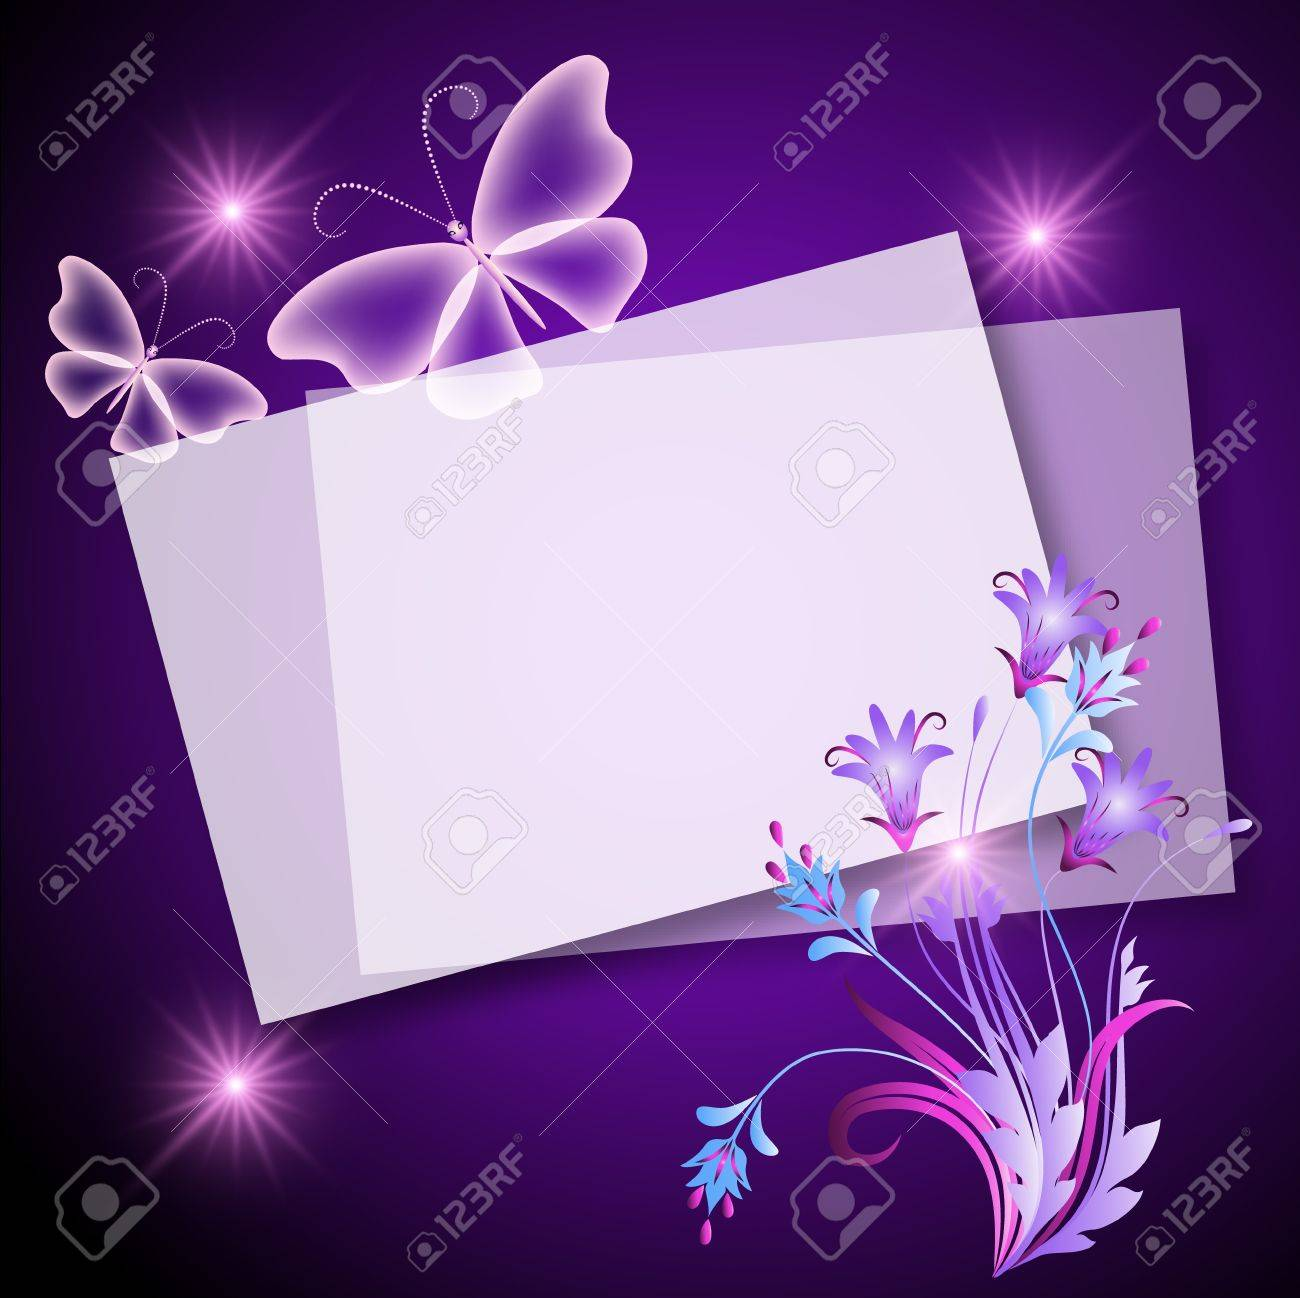 Glowing background with paper, flowers and butterfly Stock Vector - 13623235